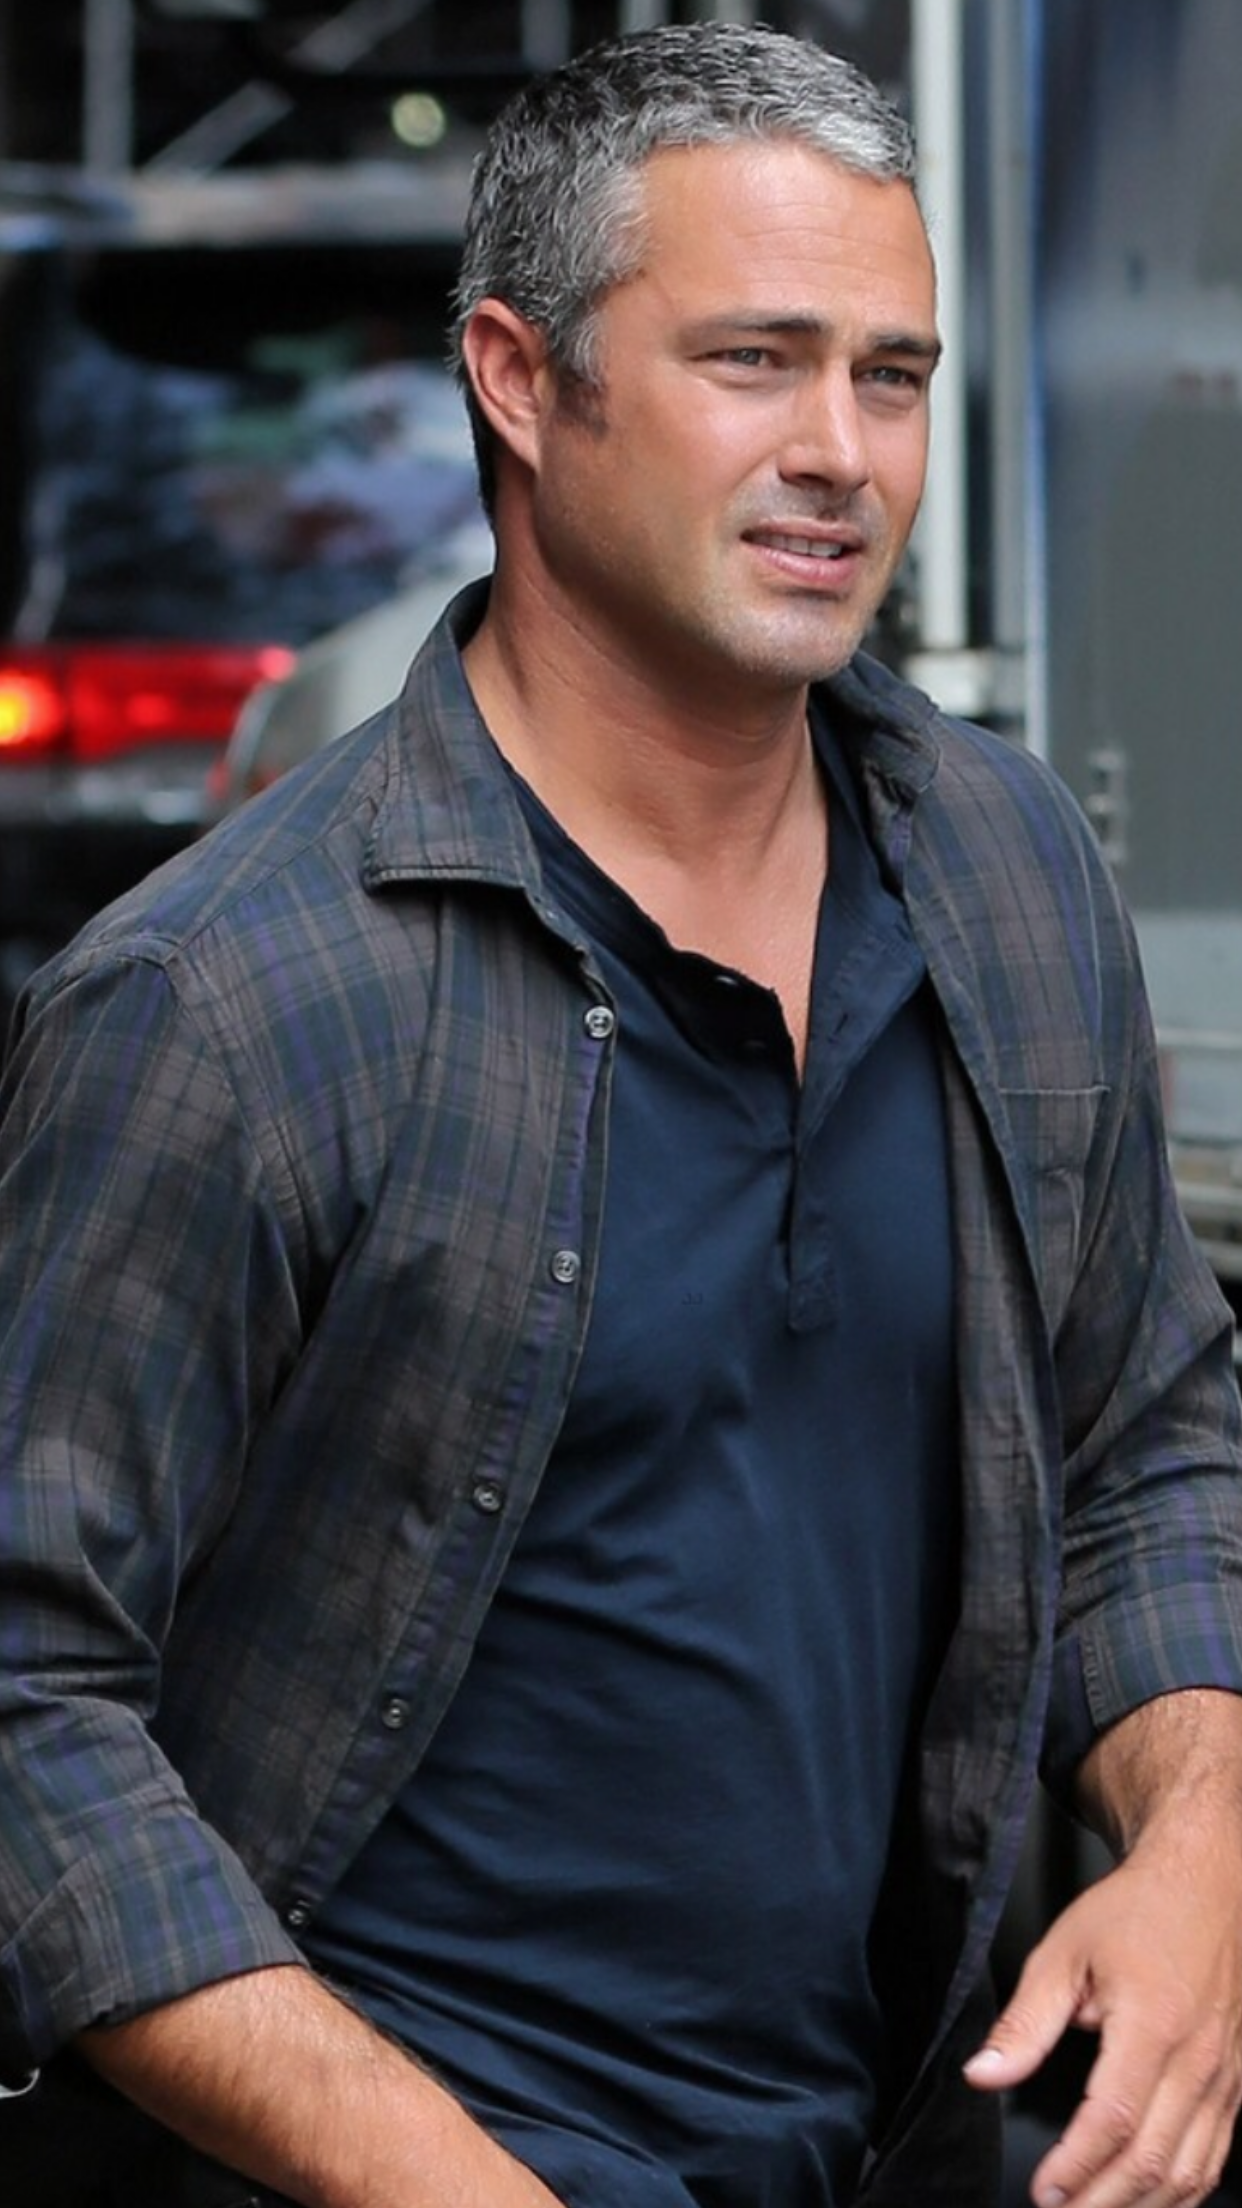 Ah he is beautiful | Deliciousness | Taylor kinney chicago ...